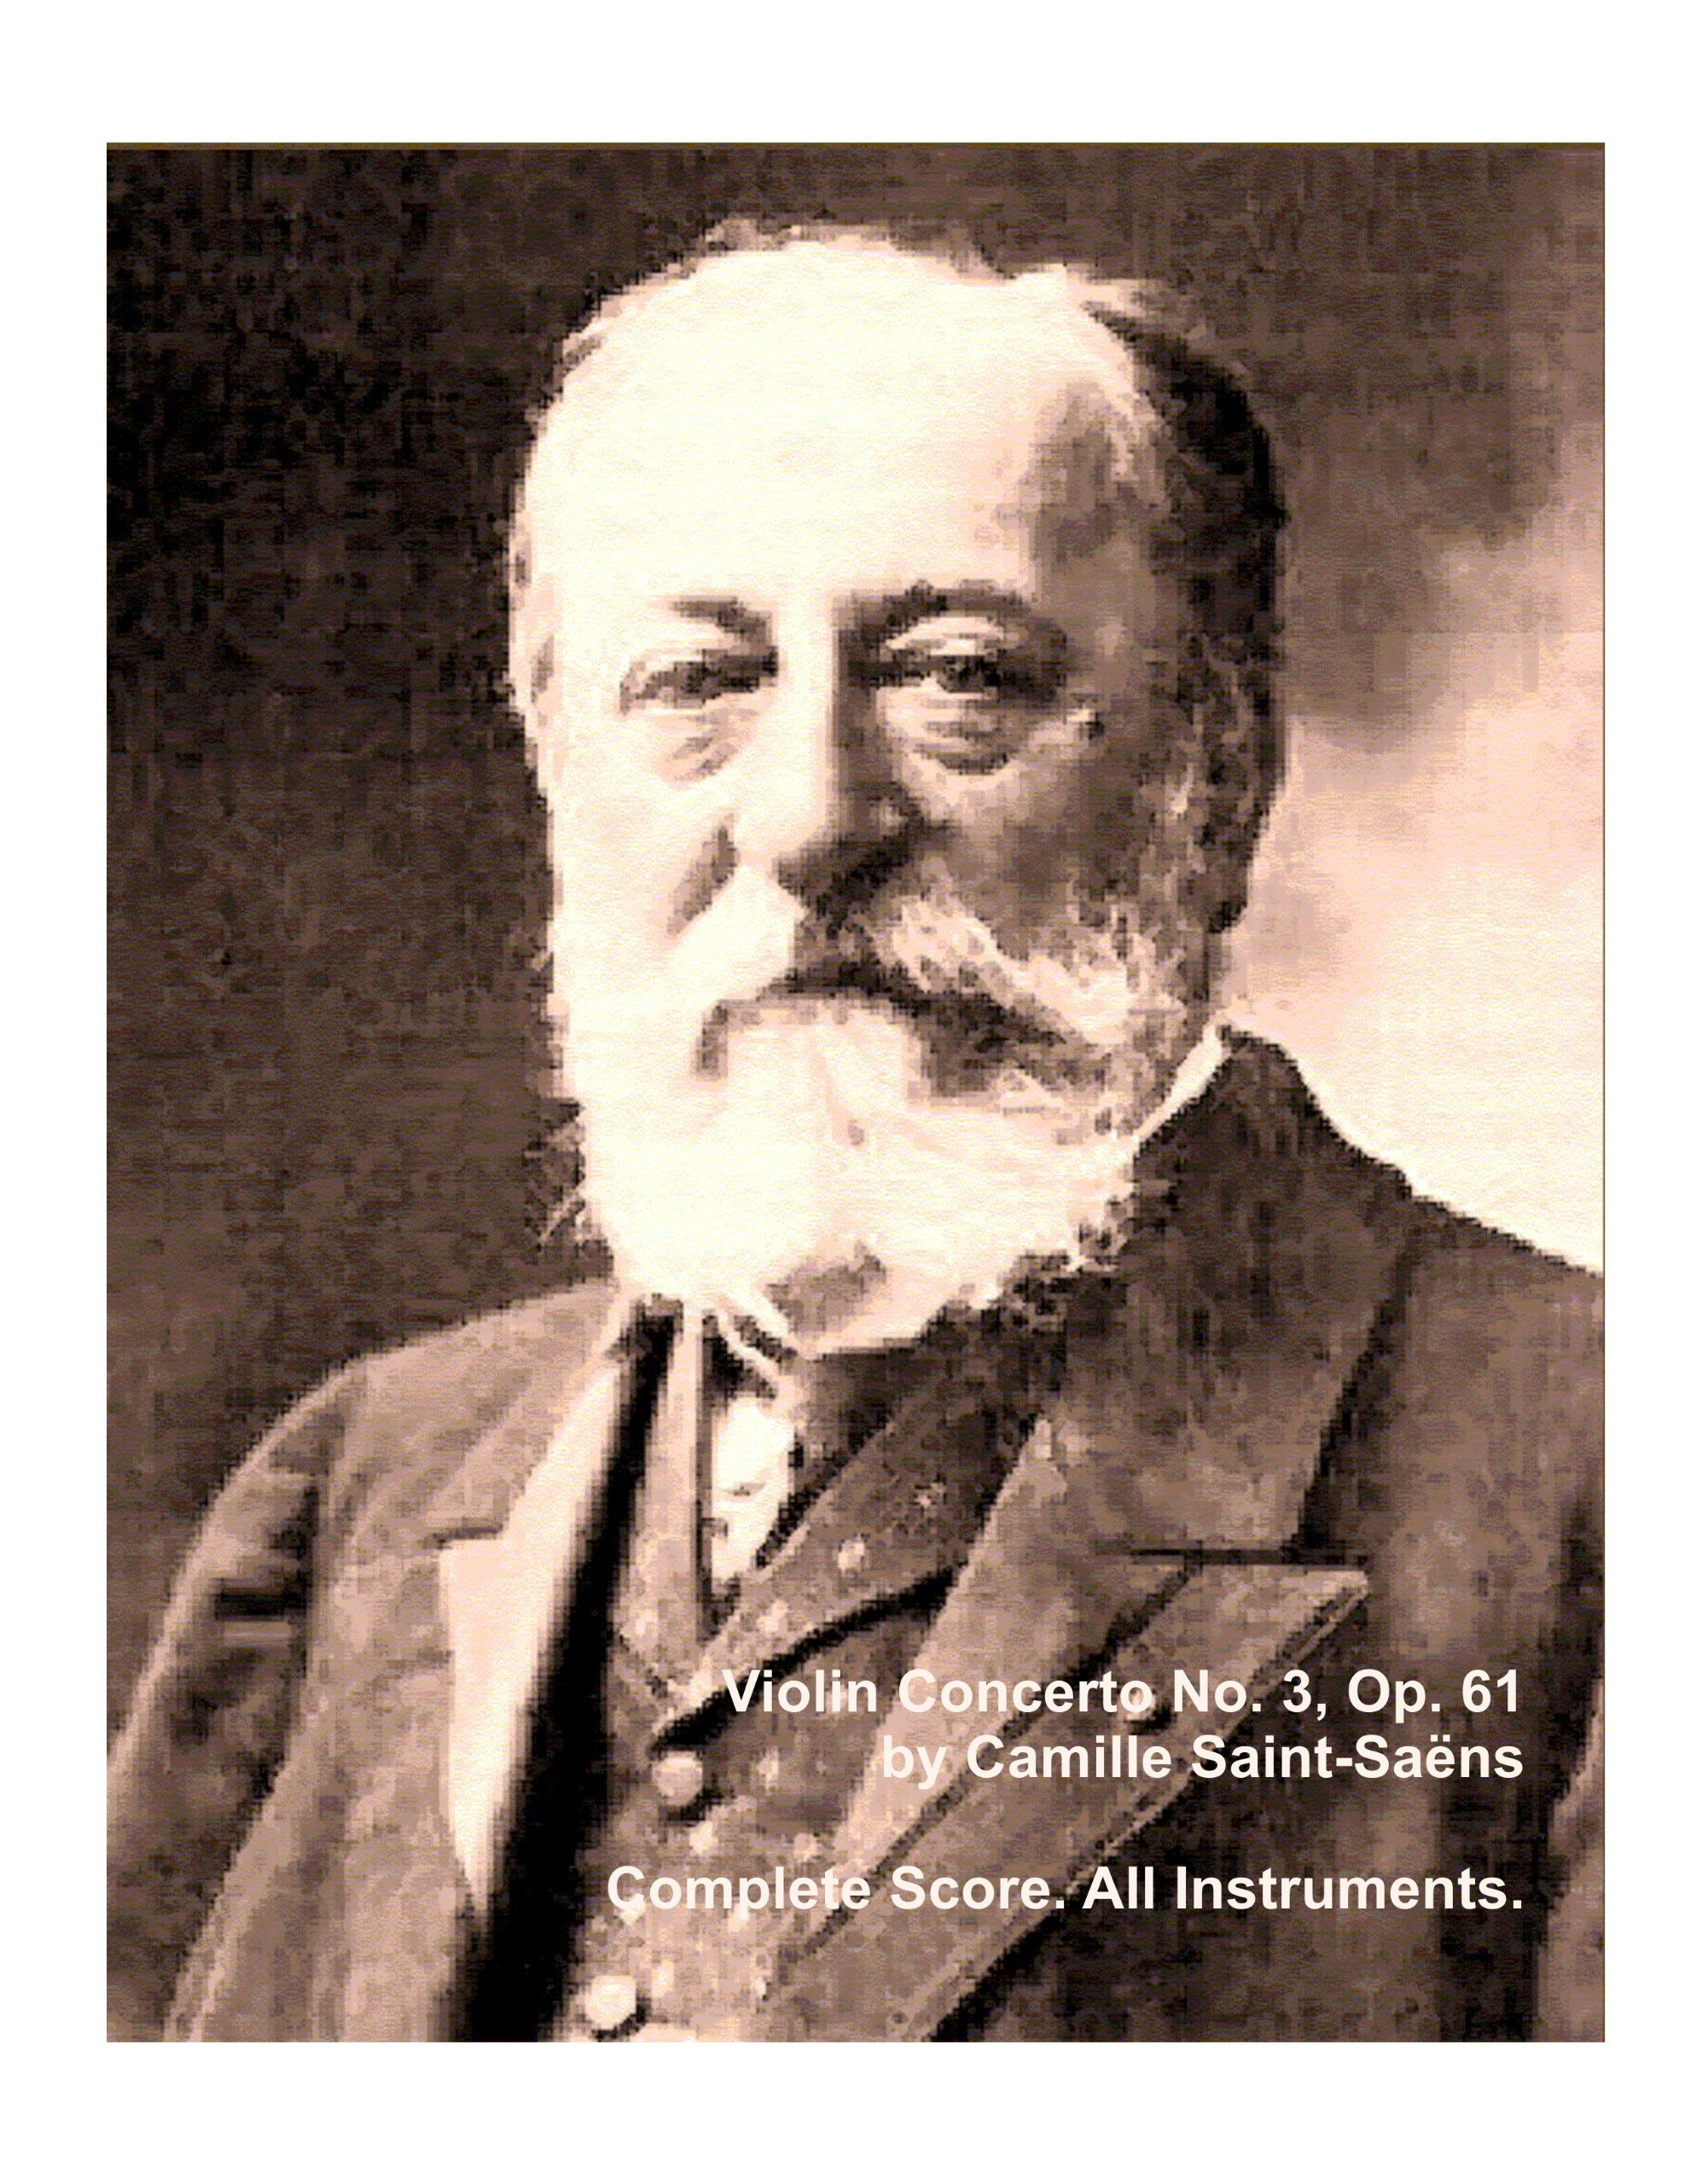 Download Violin Concerto No. 3 Op. 61 Complete Score. All Instruments. by Camille Saint-Saens. (Student Loose Leaf Facsimile 2013) pdf